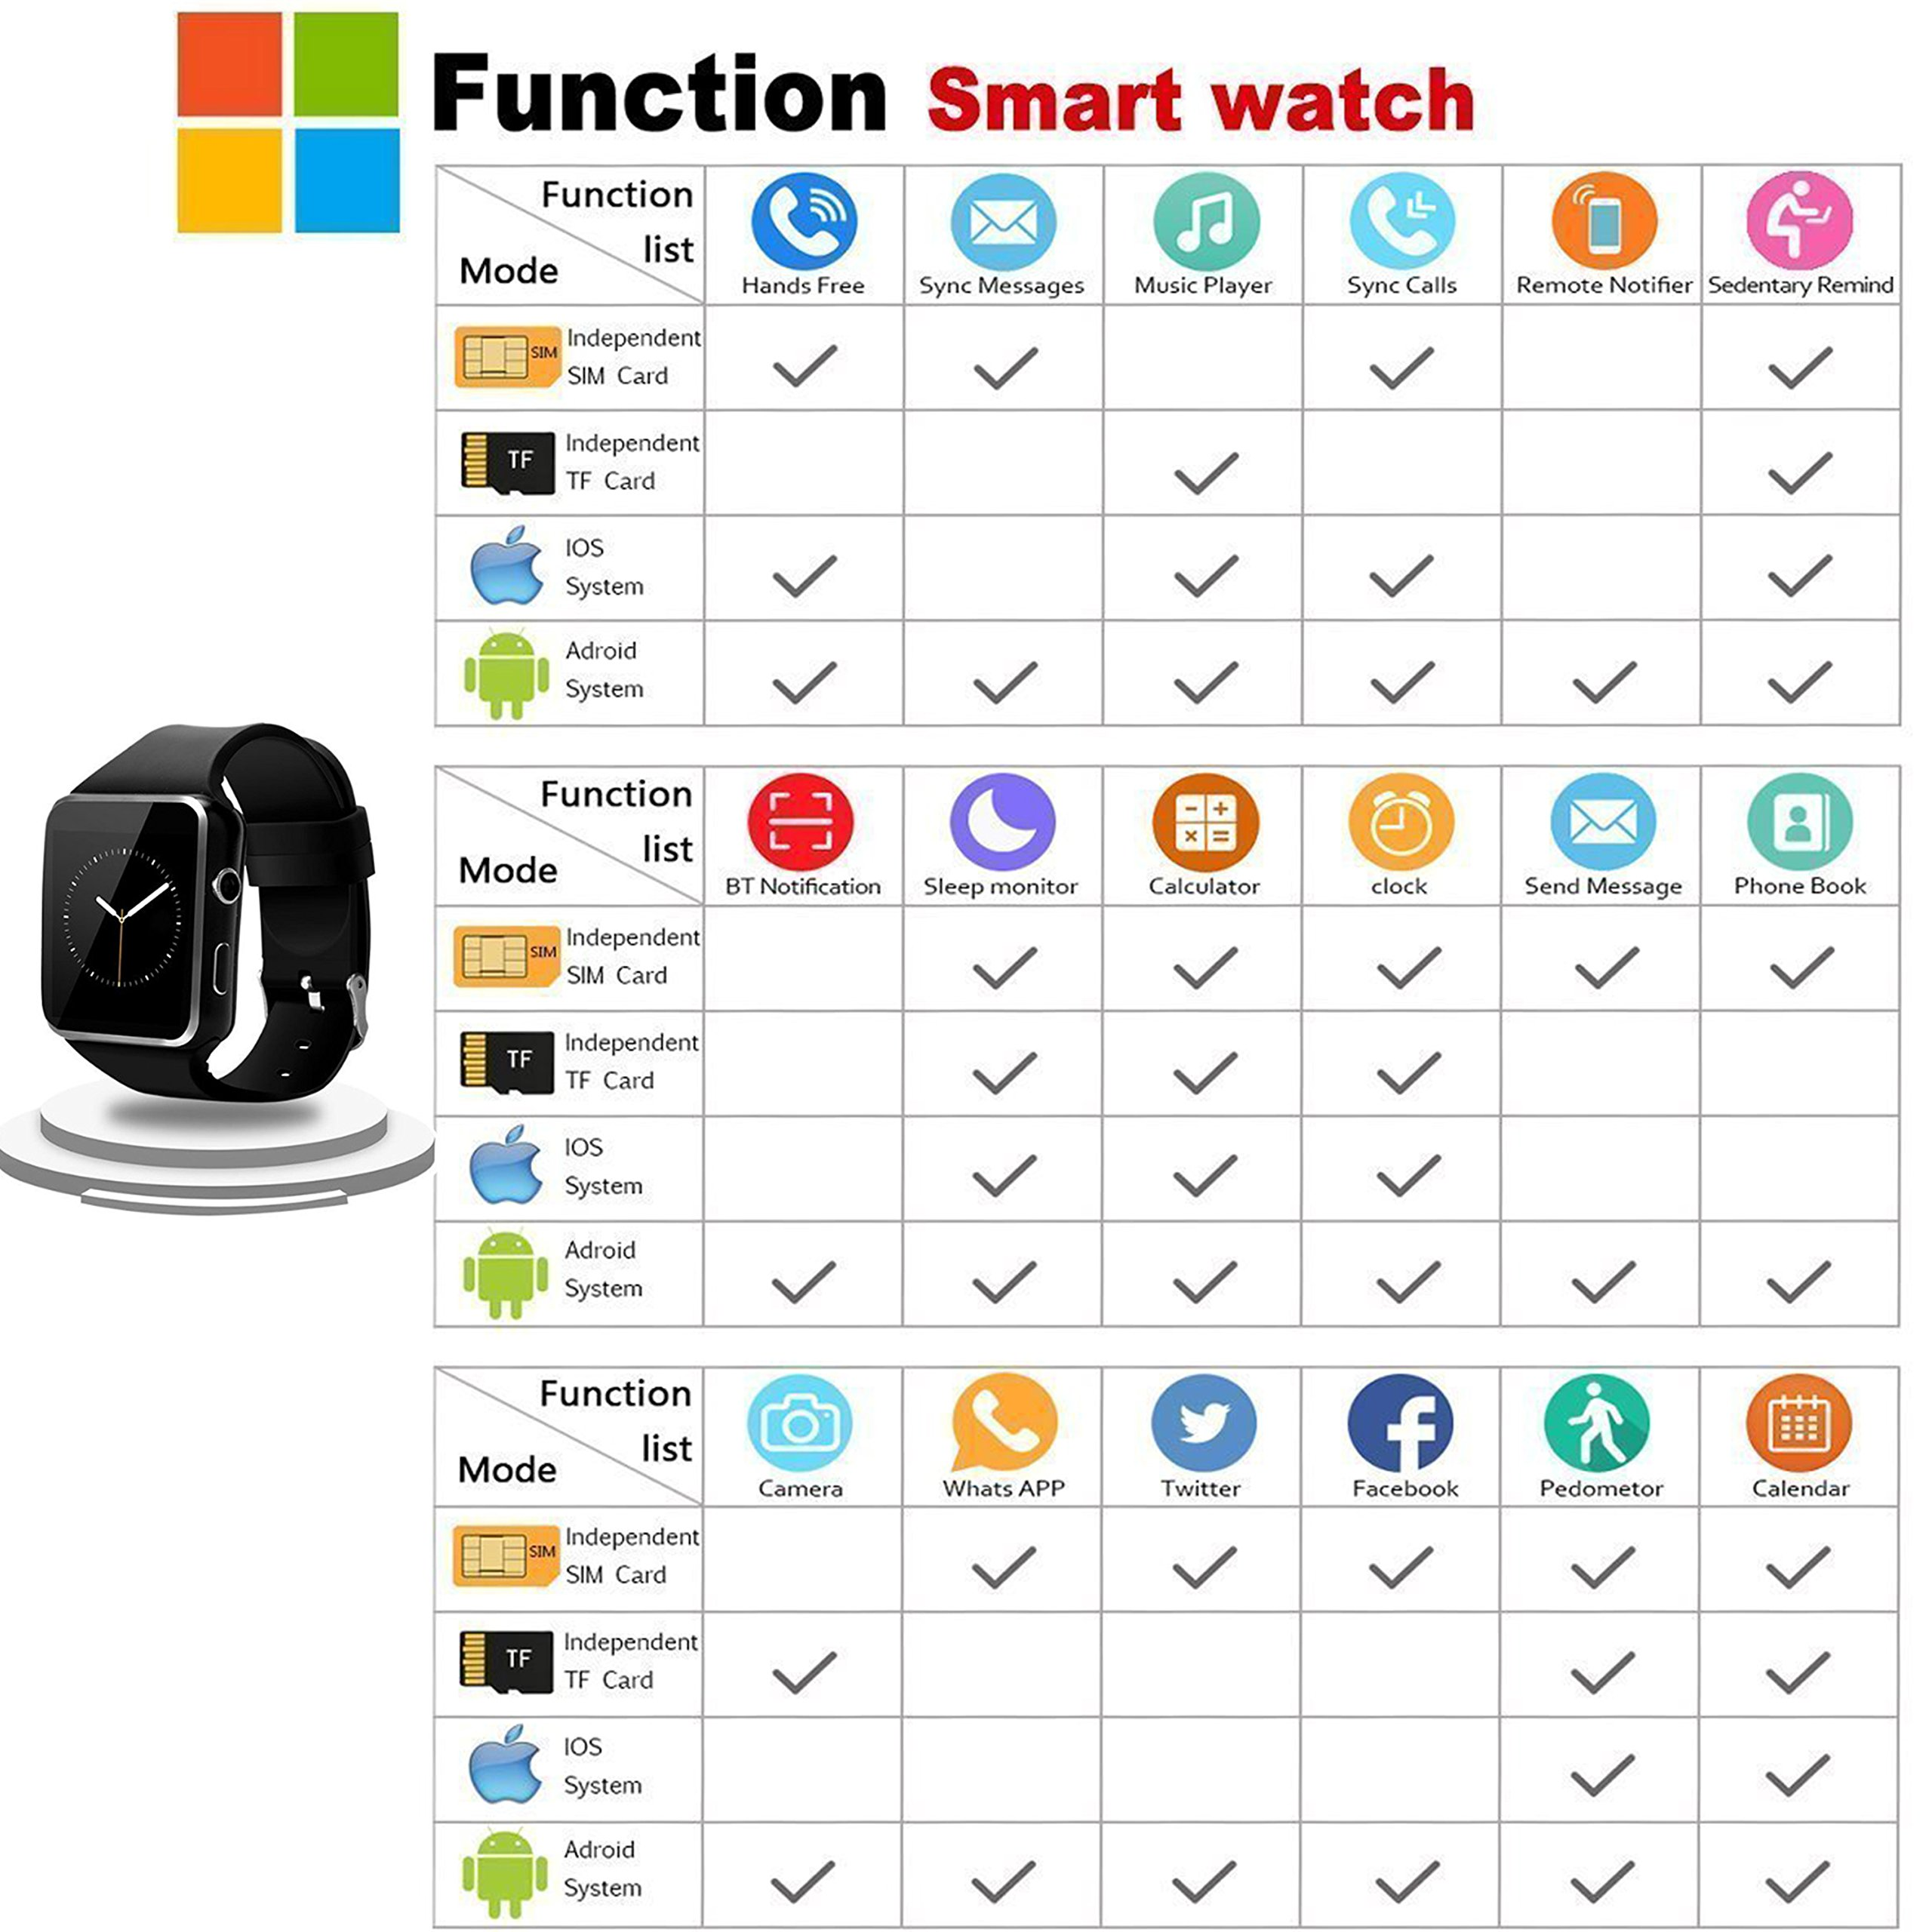 2018 Newest Bluetooth Smart Watch Touchscreen with Camera,Unlocked Watch  Phone with Sim Card Slot,Smart Wrist Watch,Smartwatch Phone for Android